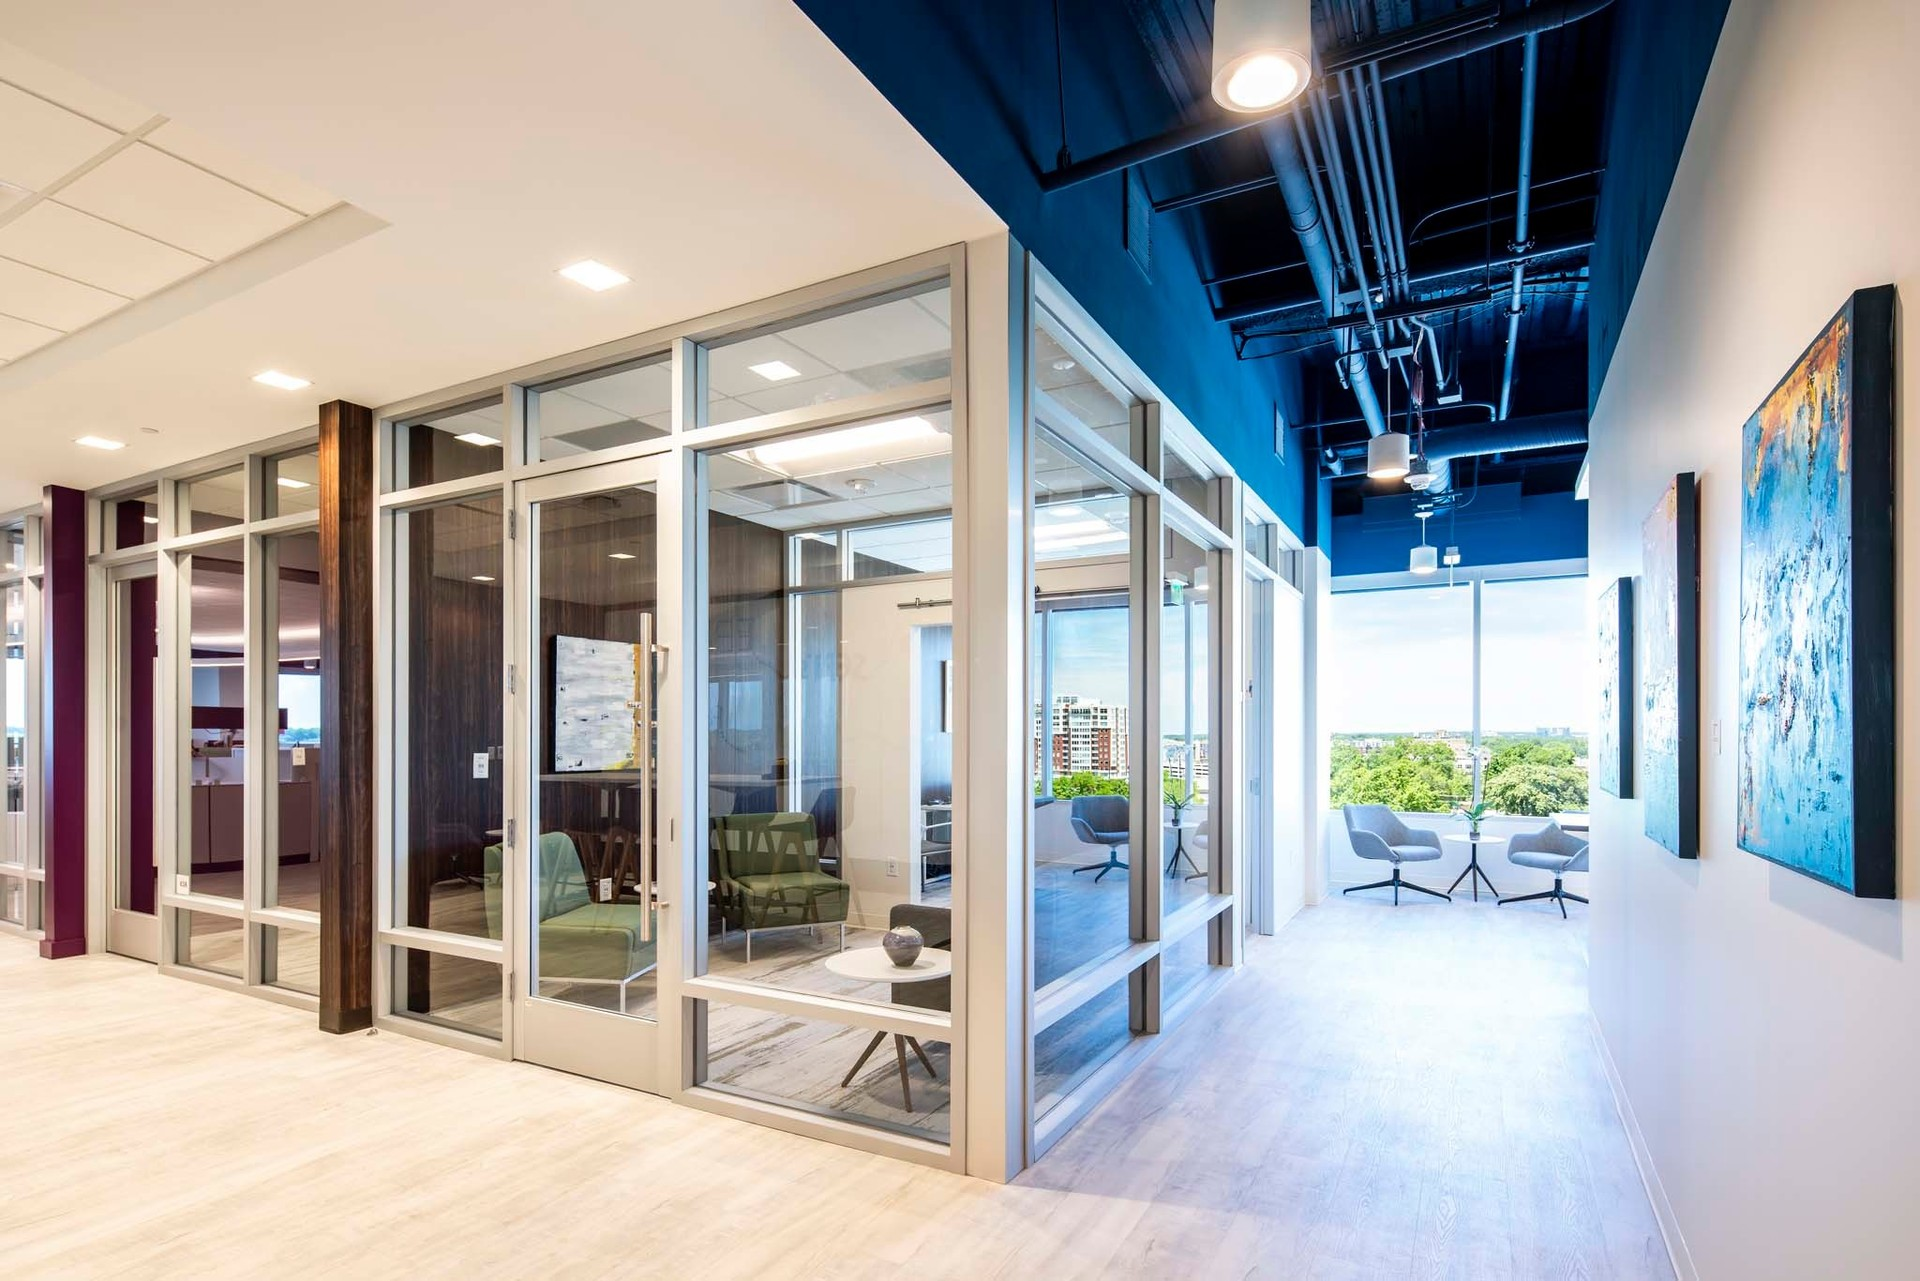 Private offices with a view at SEPI Headquarters in Raleigh, North Carolina, by Phillips Architecture.